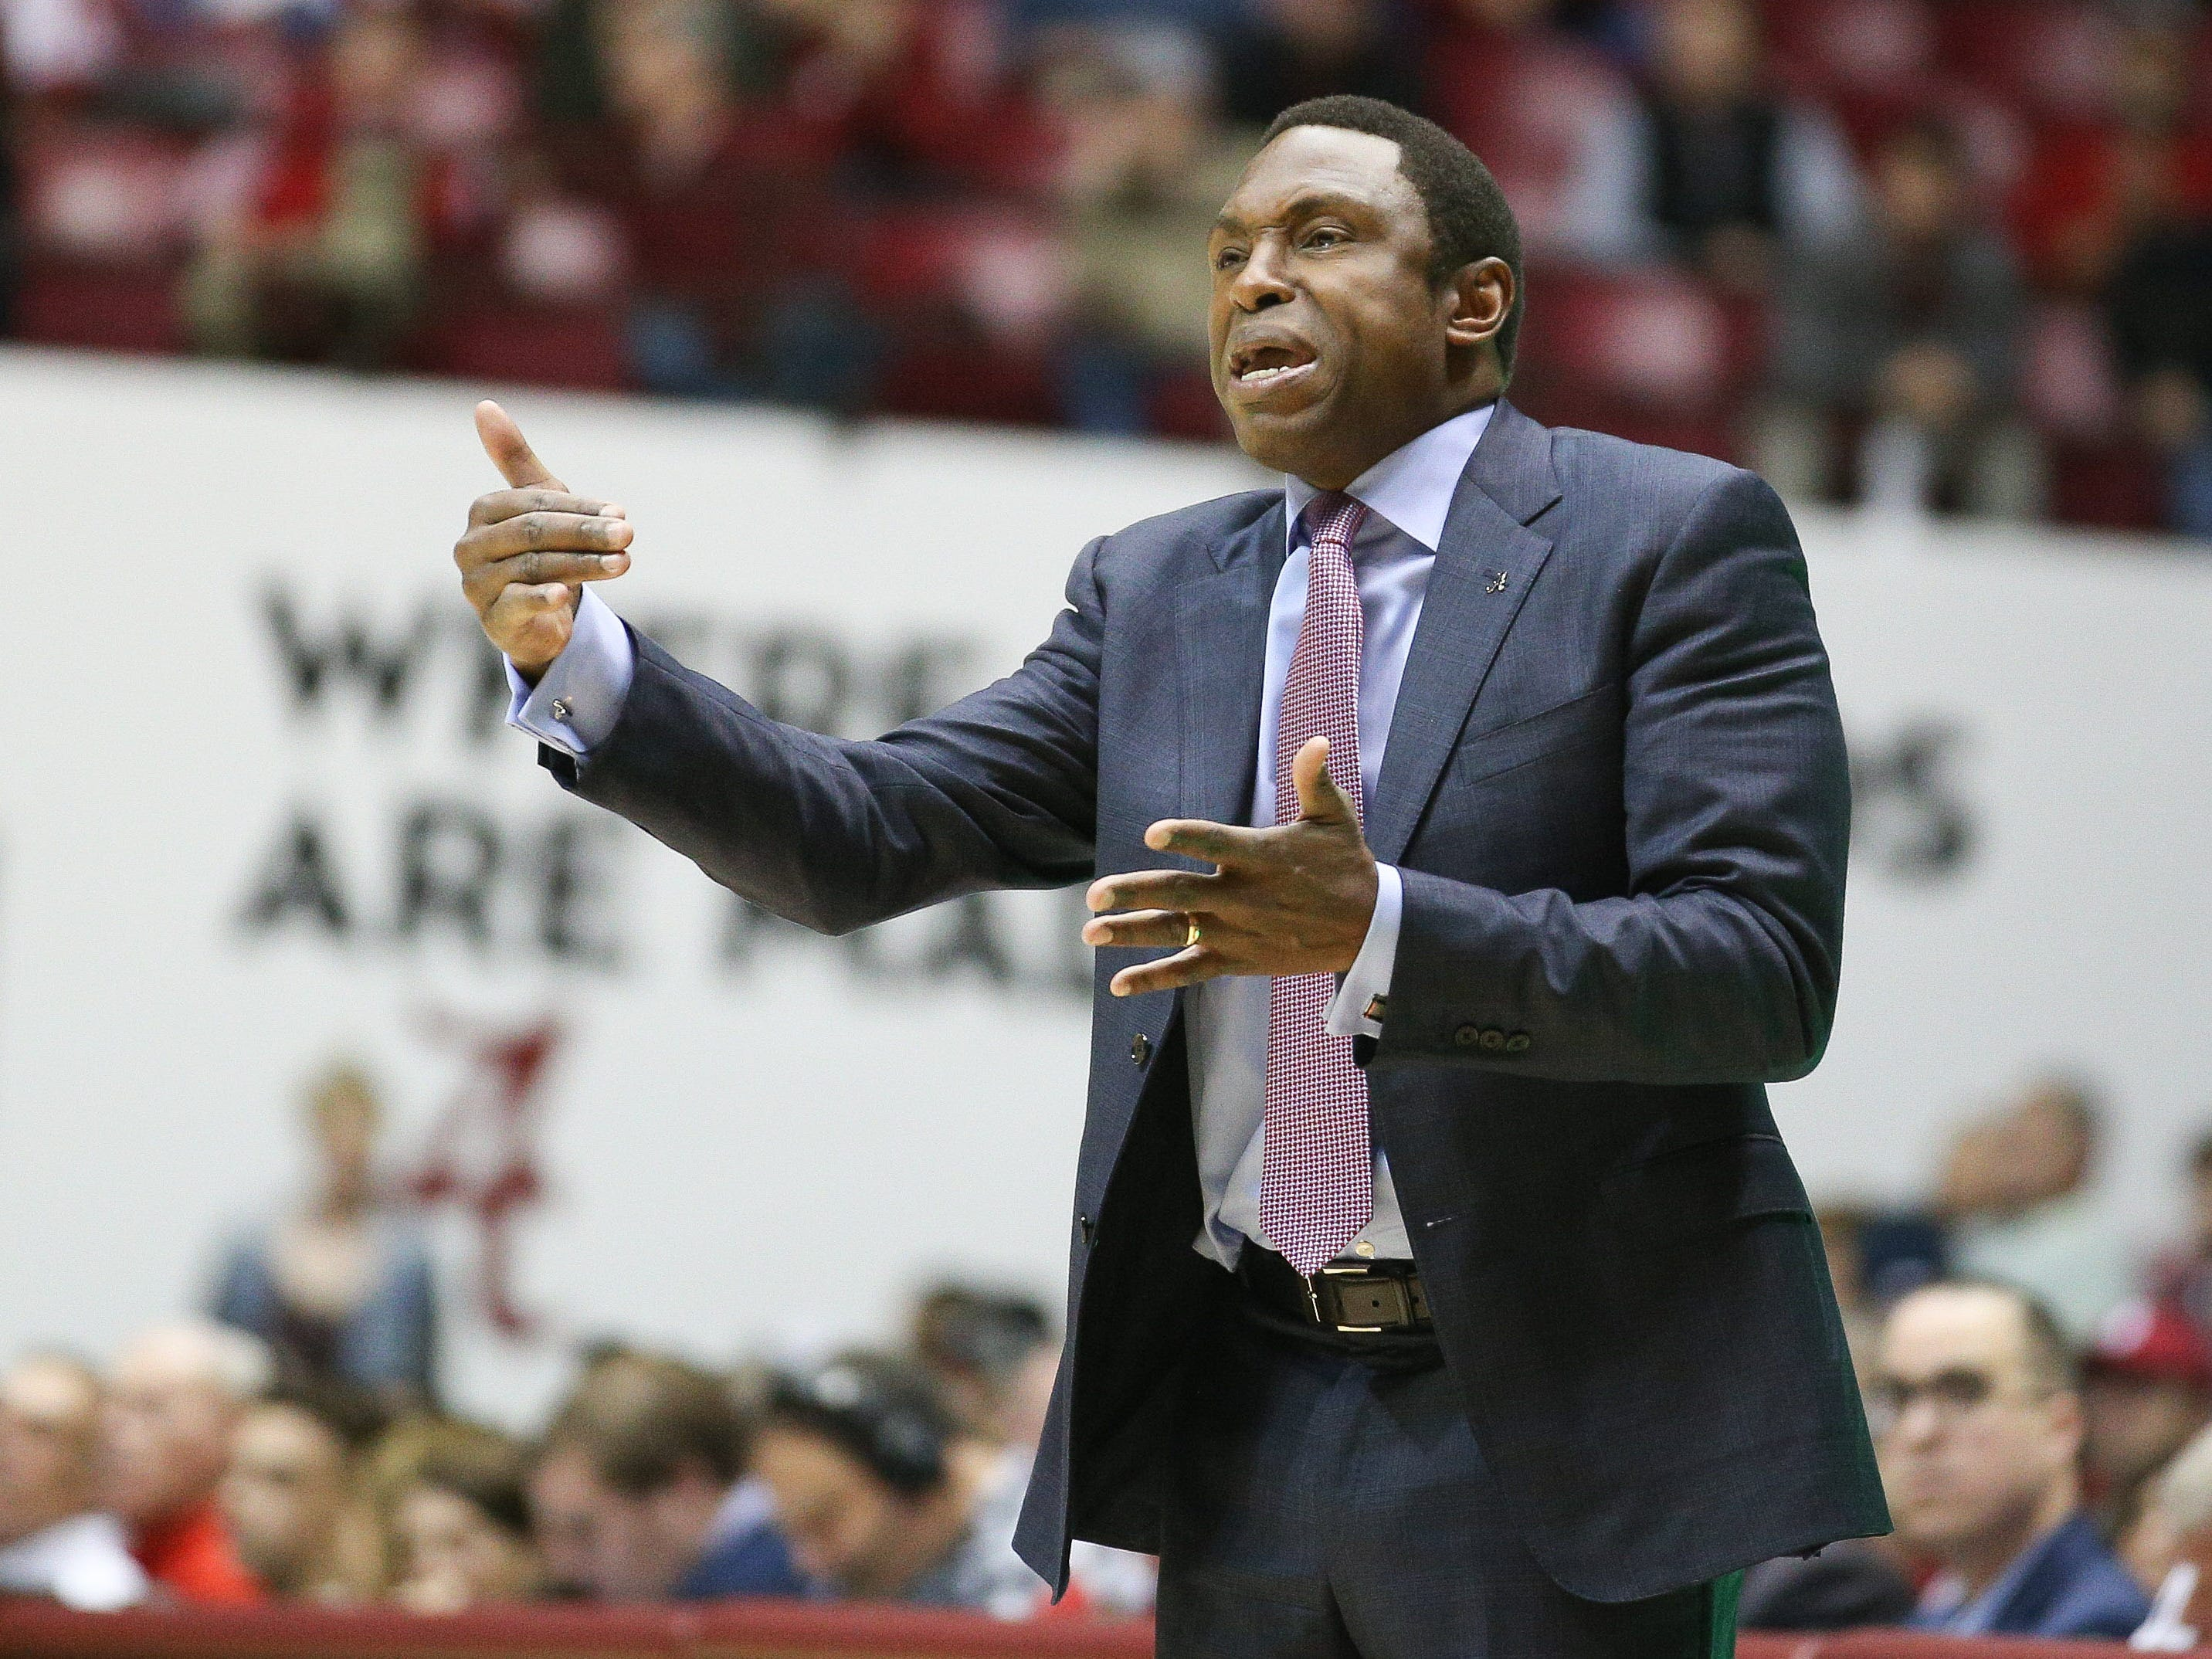 Dec 9, 2018; Tuscaloosa, AL, USA; Alabama Crimson Tide head coach Avery Johnson reacts to his teams play during the first half against Arizona Wildcats at Coleman Coliseum. Mandatory Credit: Marvin Gentry-USA TODAY Sports